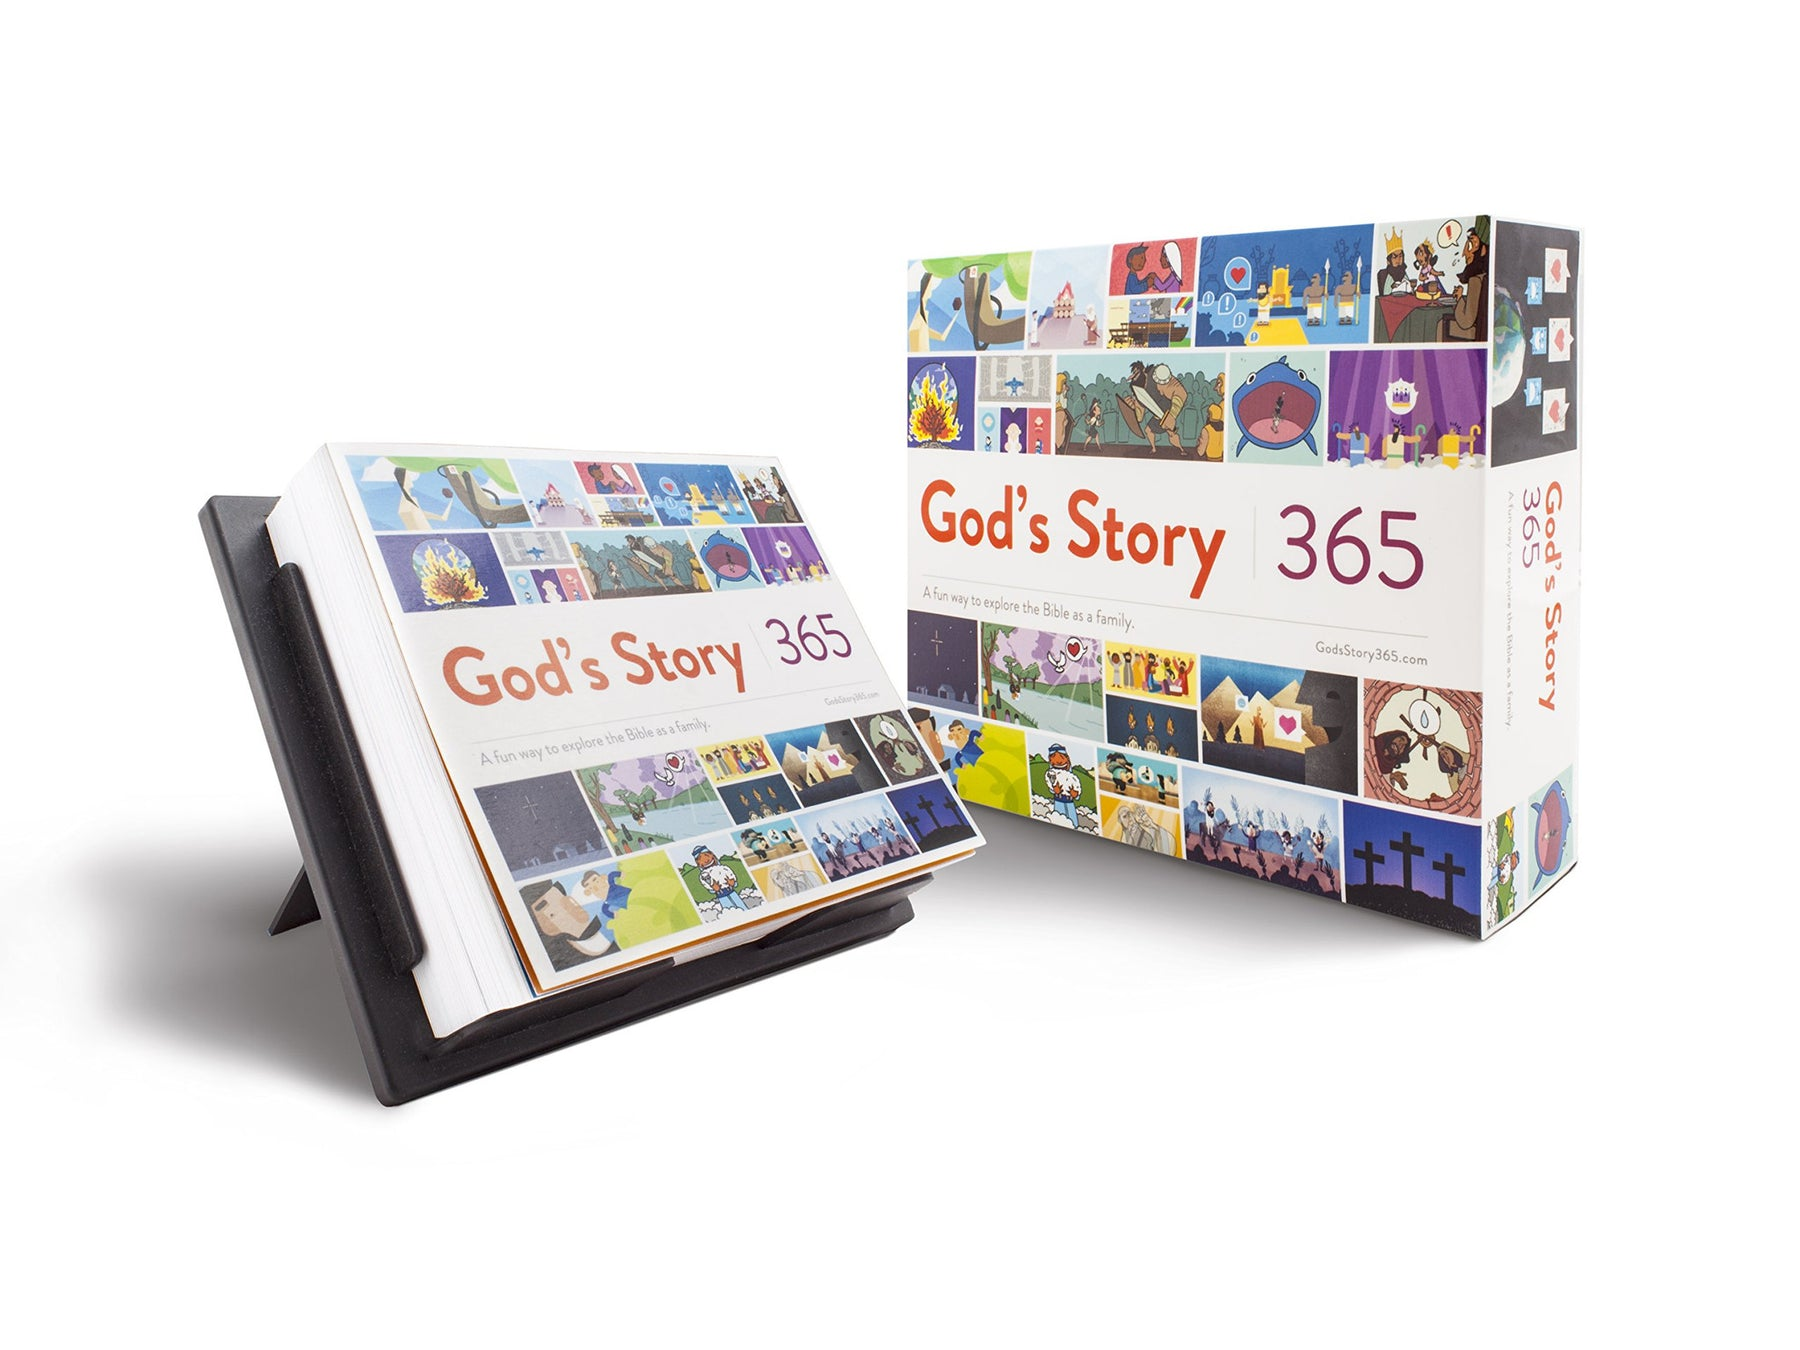 God's Story 365: A Fun Way to Explore the Bible as a Family